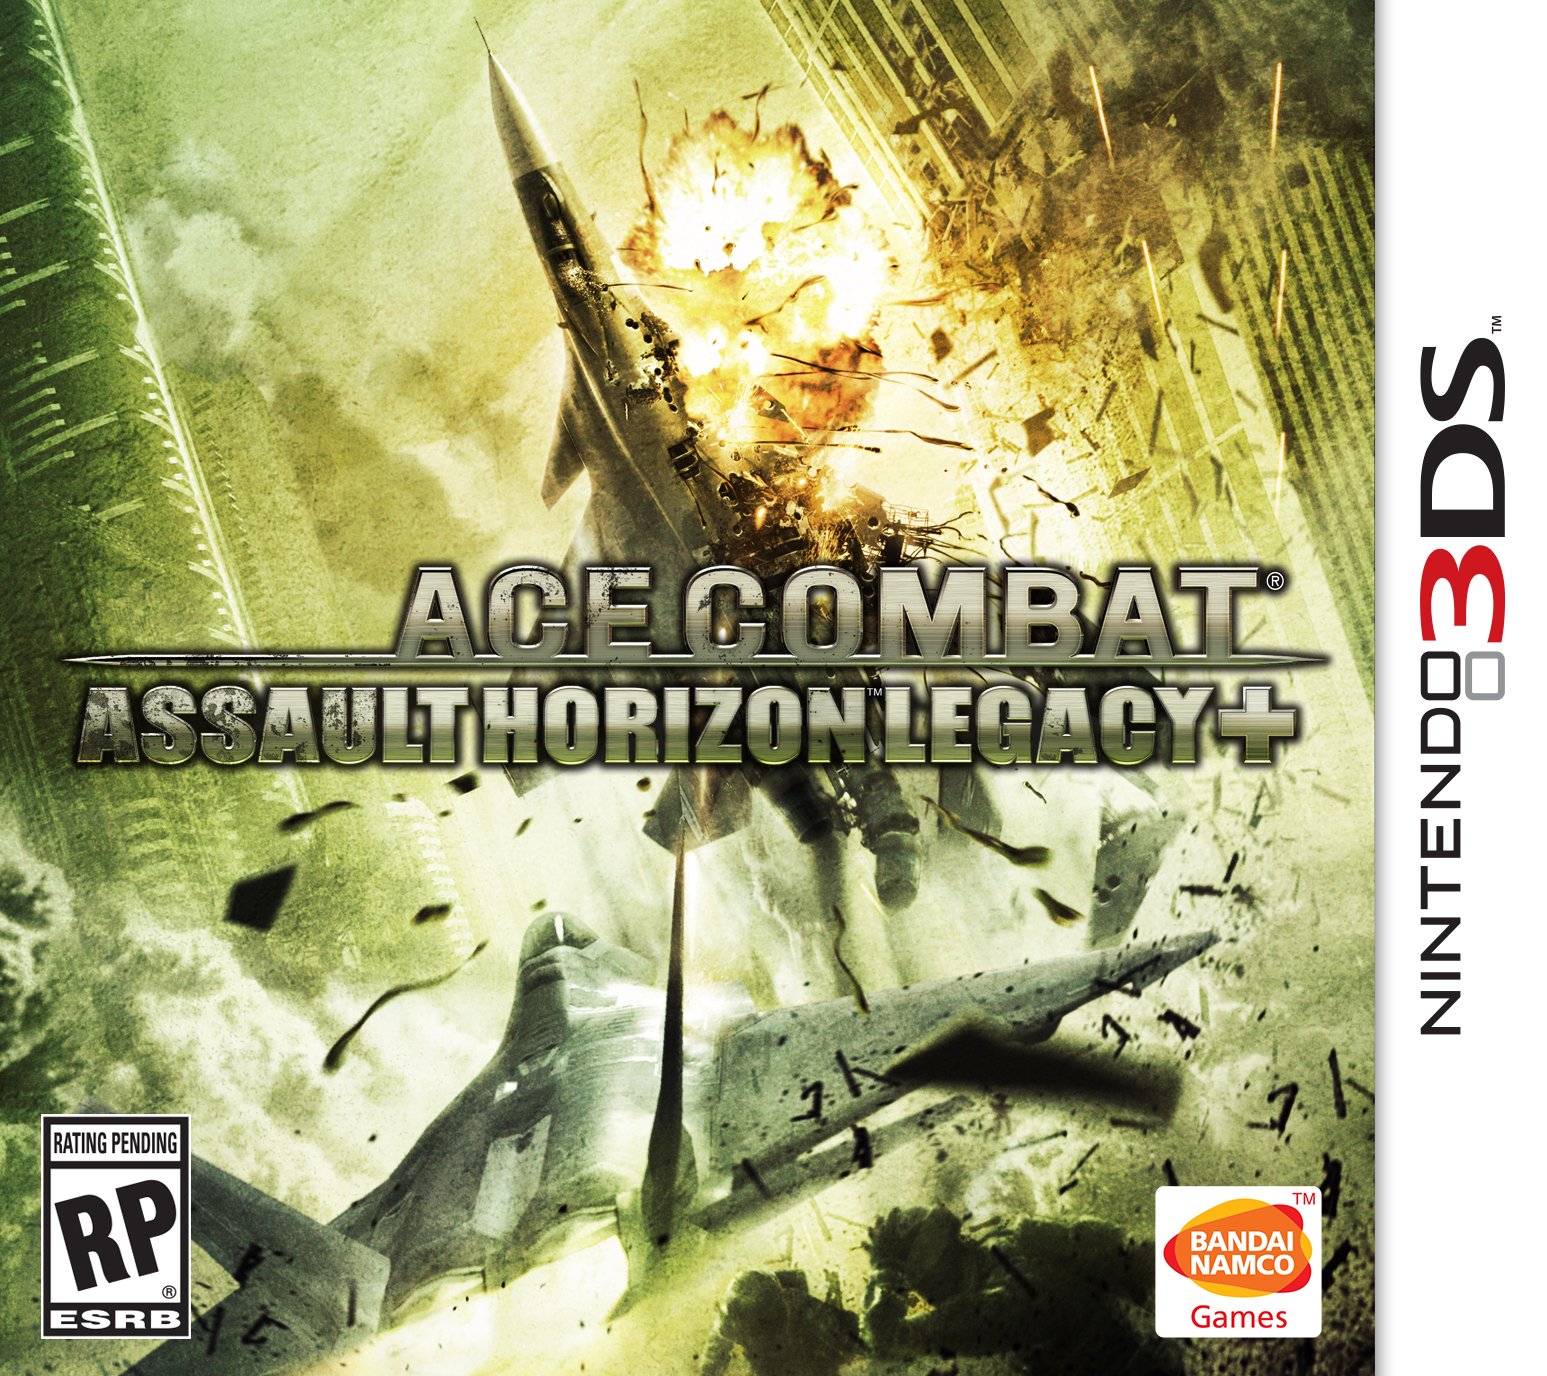 Box art - Ace Combat Assault Horizon Legacy Plus